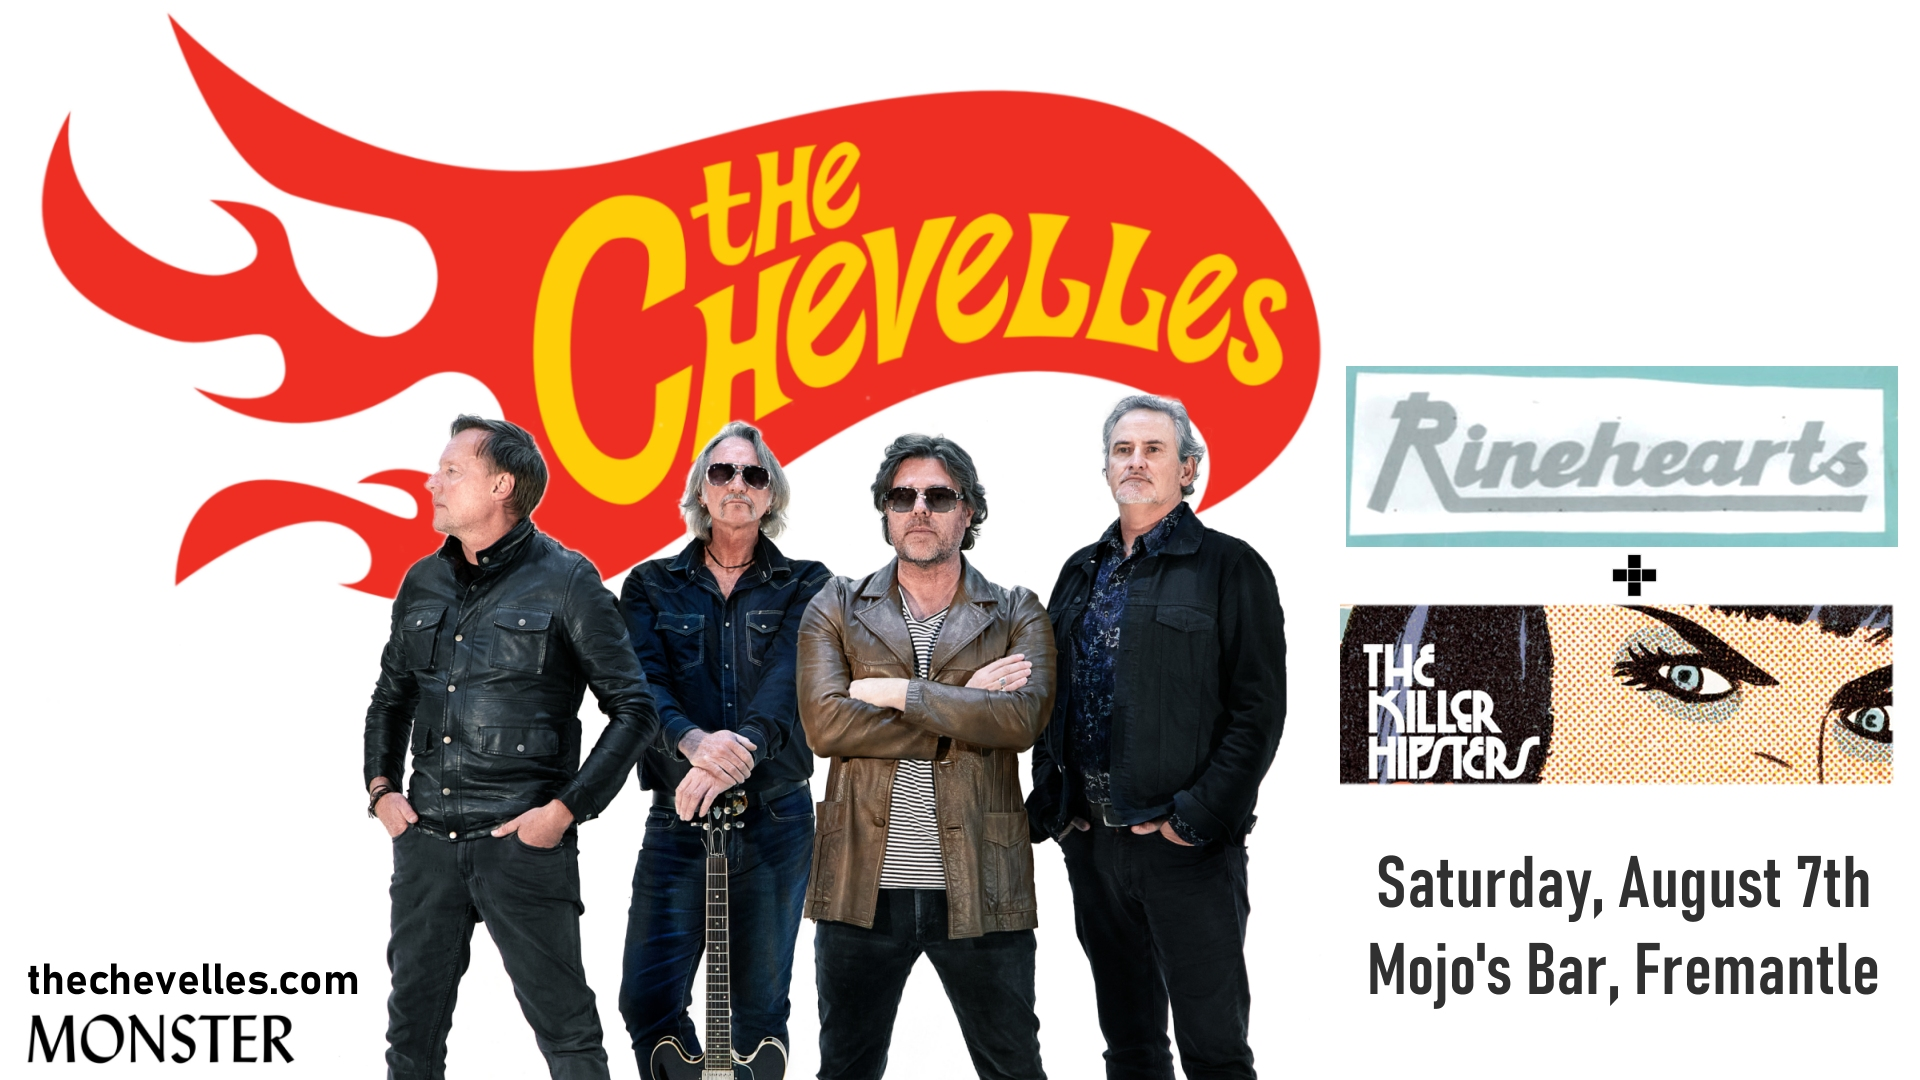 Rinehearts support The Chevelles